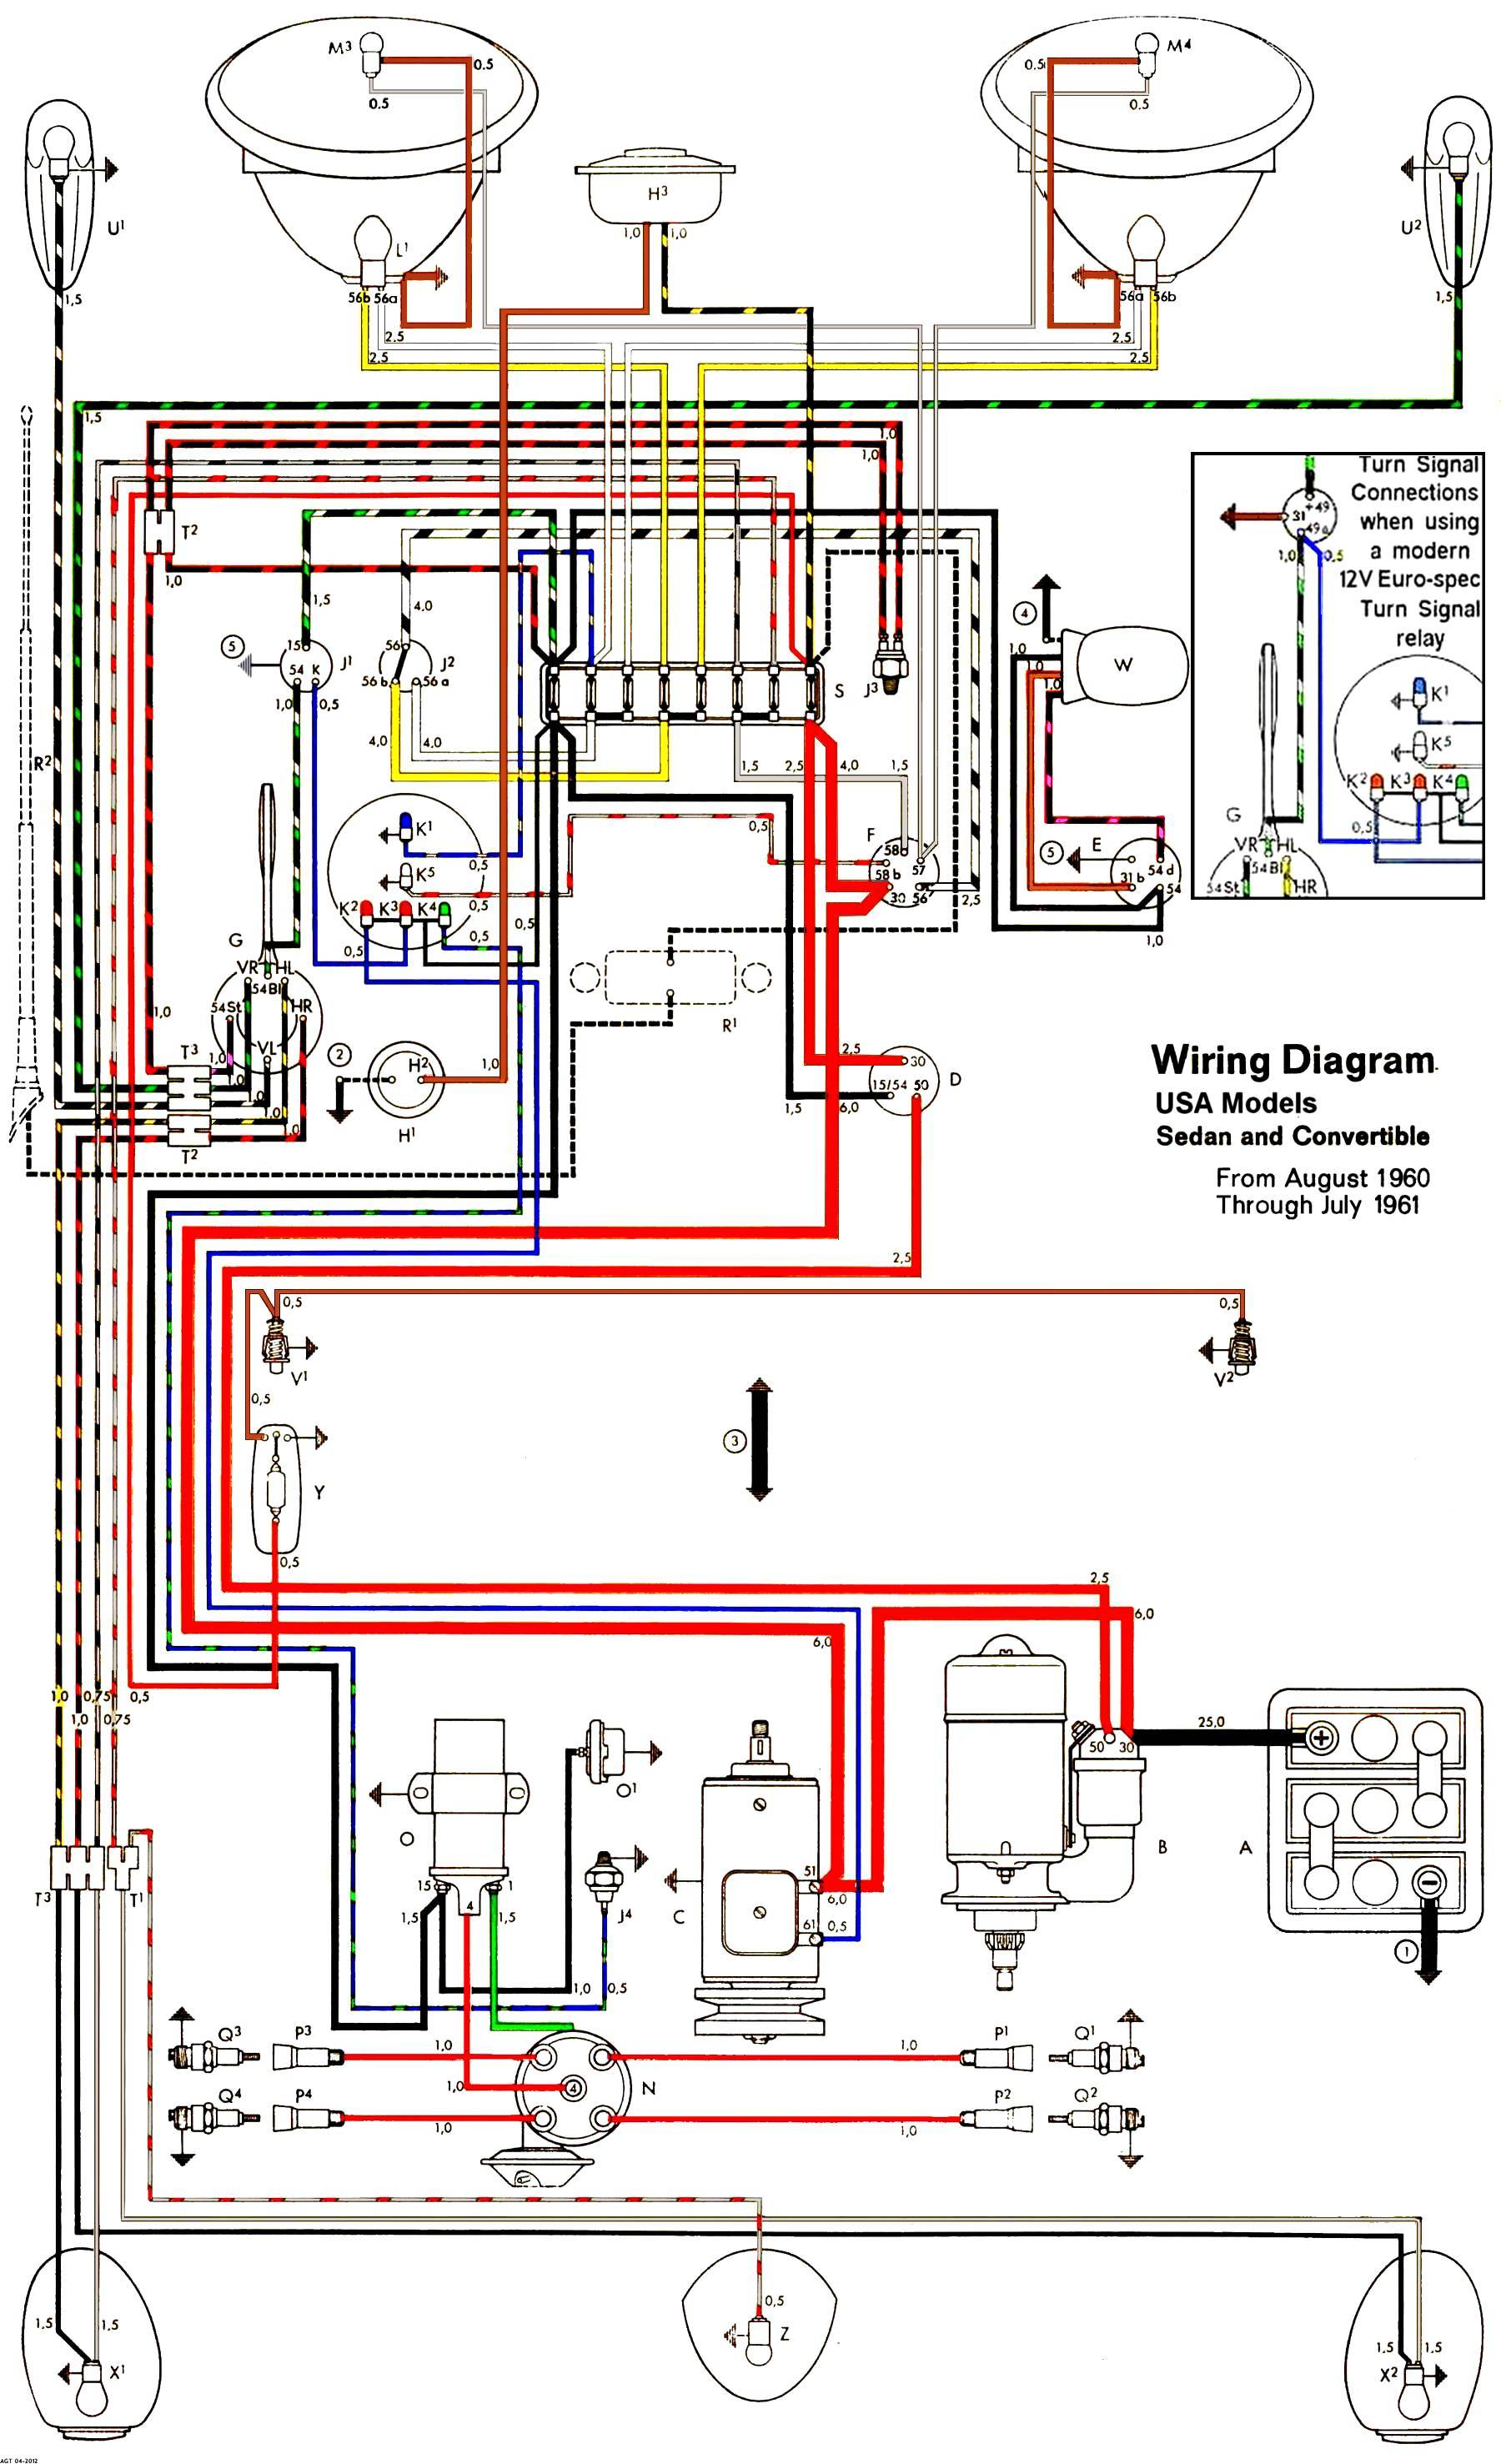 72 volkswagen beetle wiring diagram wiring library 73 Beetle Wiring Diagram